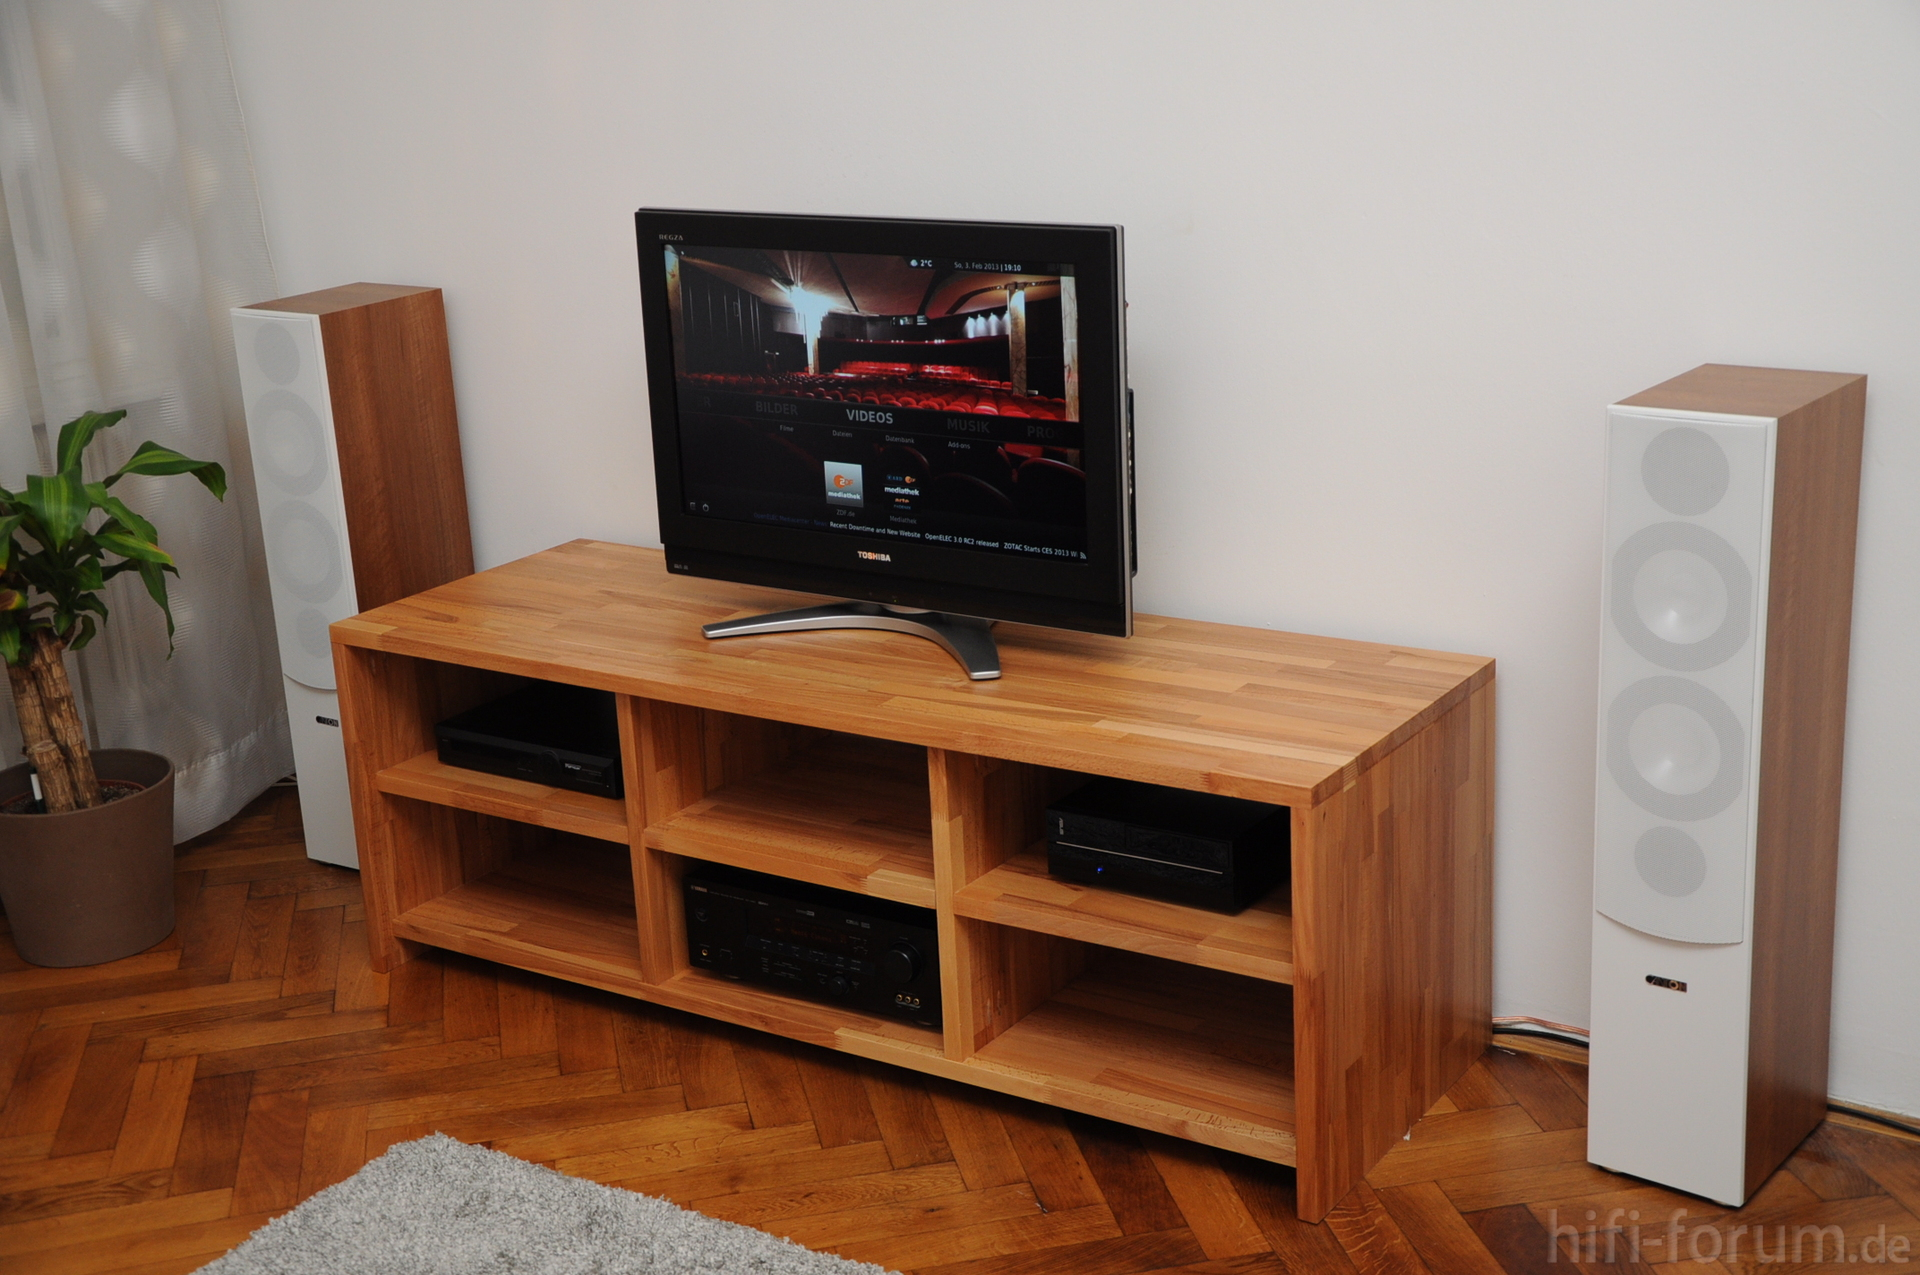 sideboard bef llt sideboard hifi bildergalerie. Black Bedroom Furniture Sets. Home Design Ideas